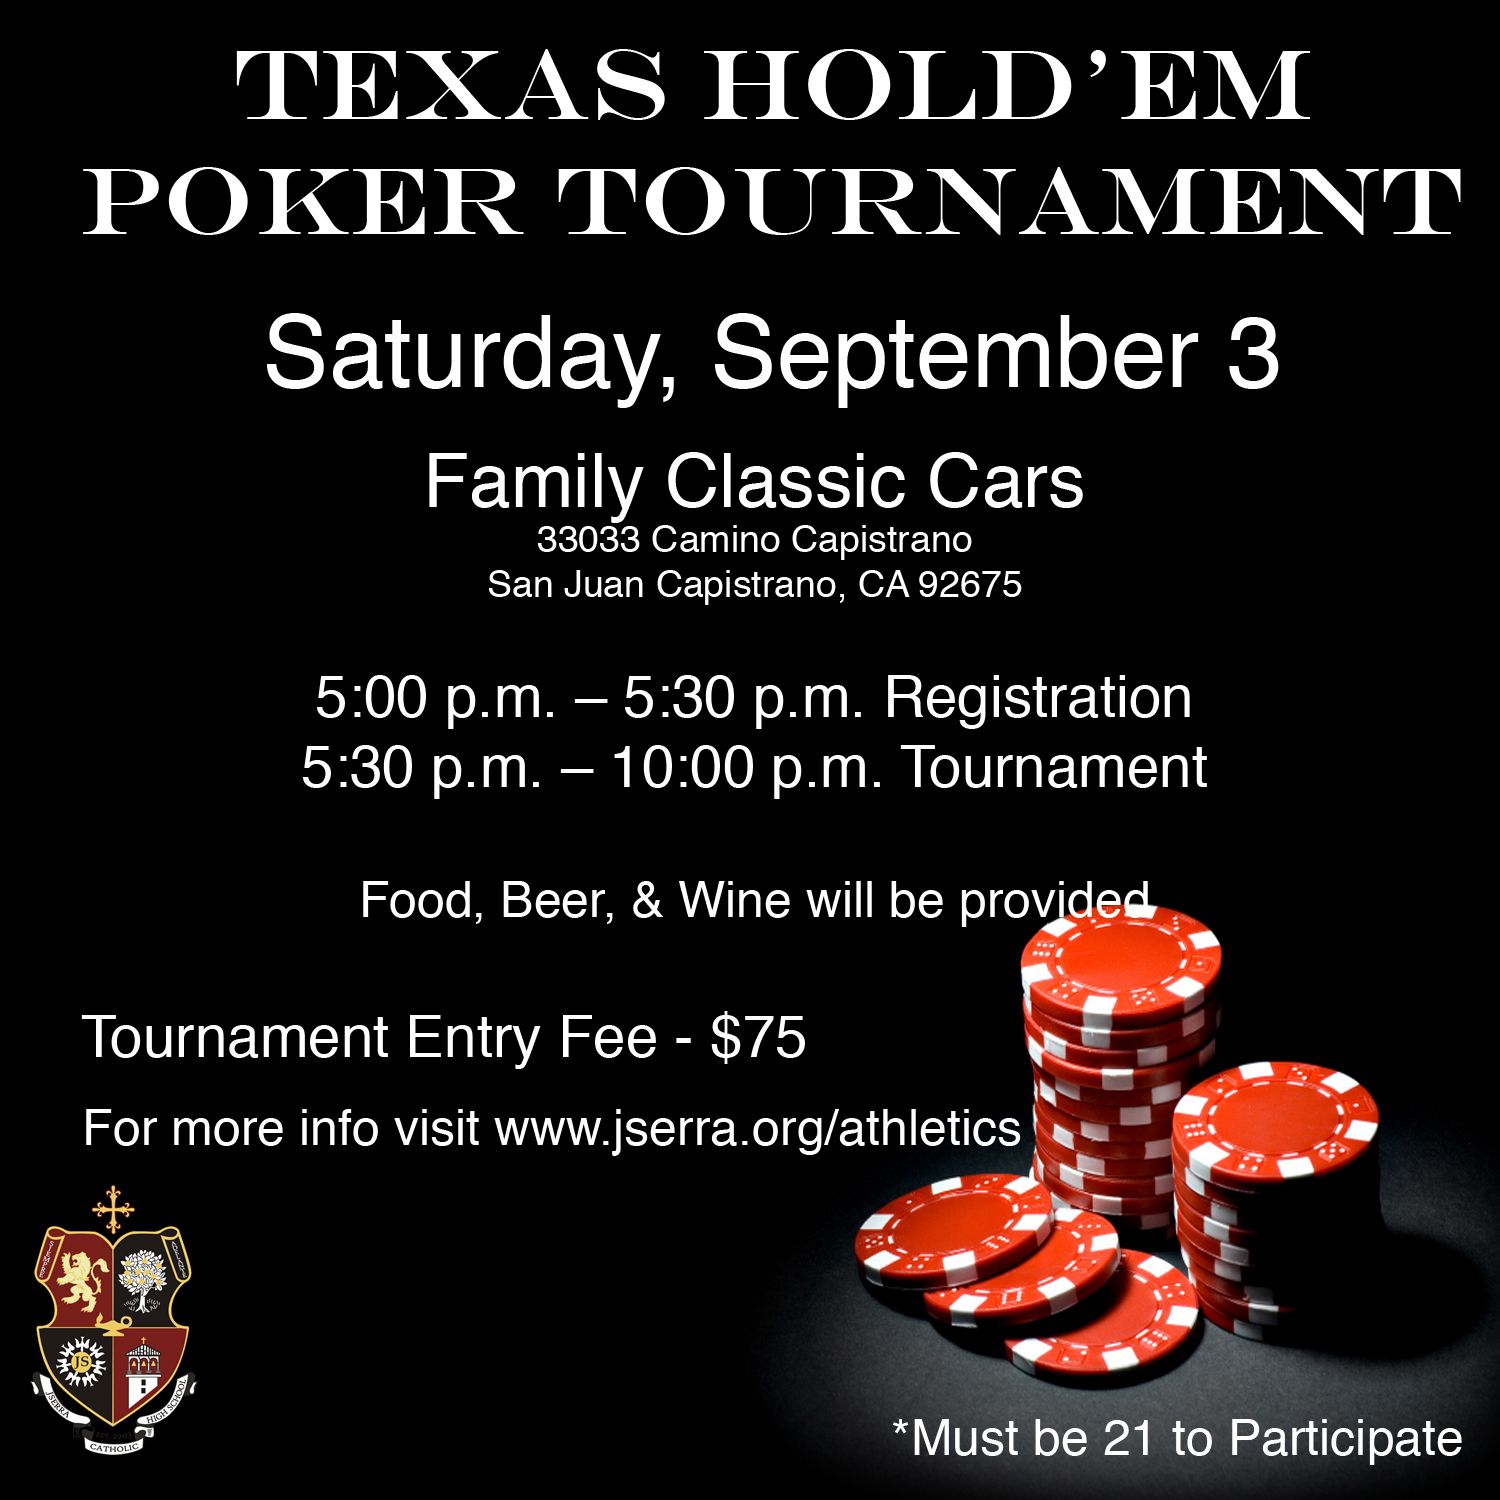 JSerra Athletics Texas Hold 'Em Tournament Returns